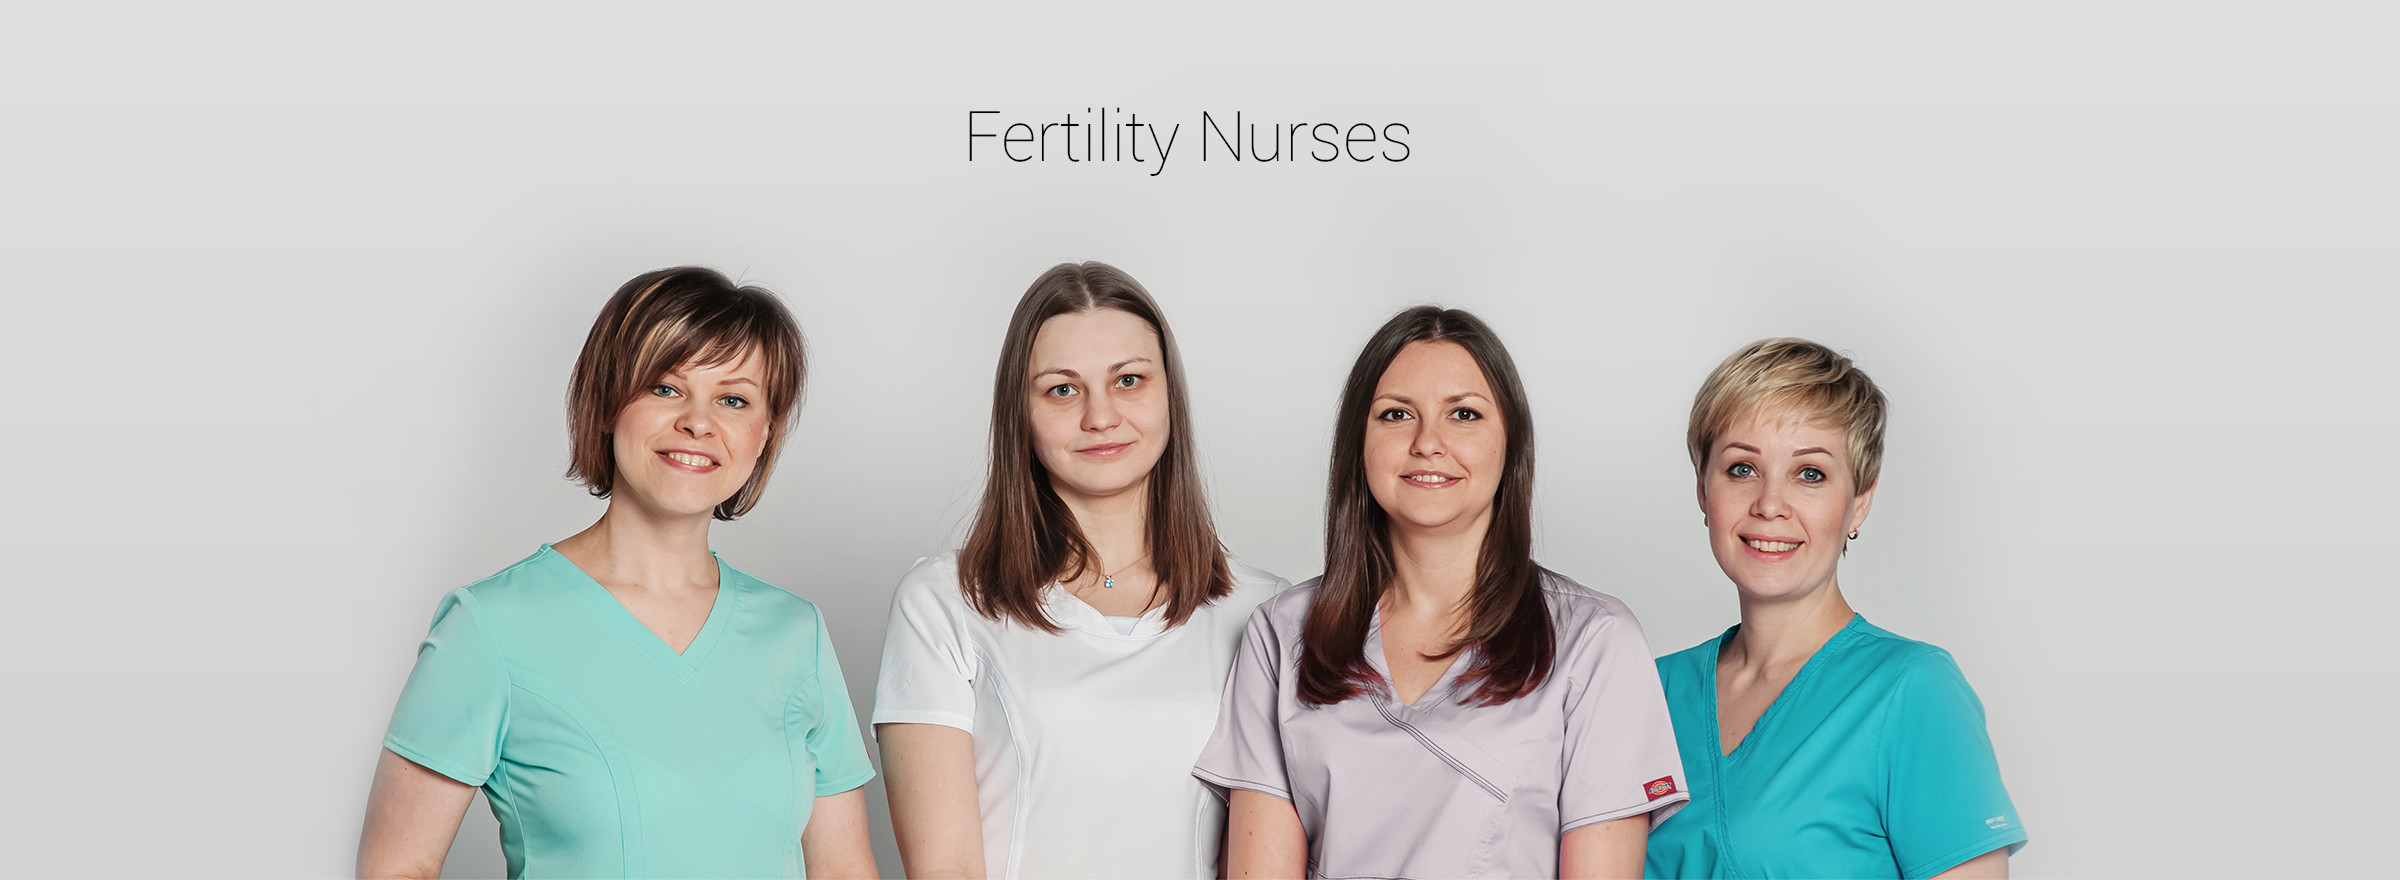 Fertility Nurses